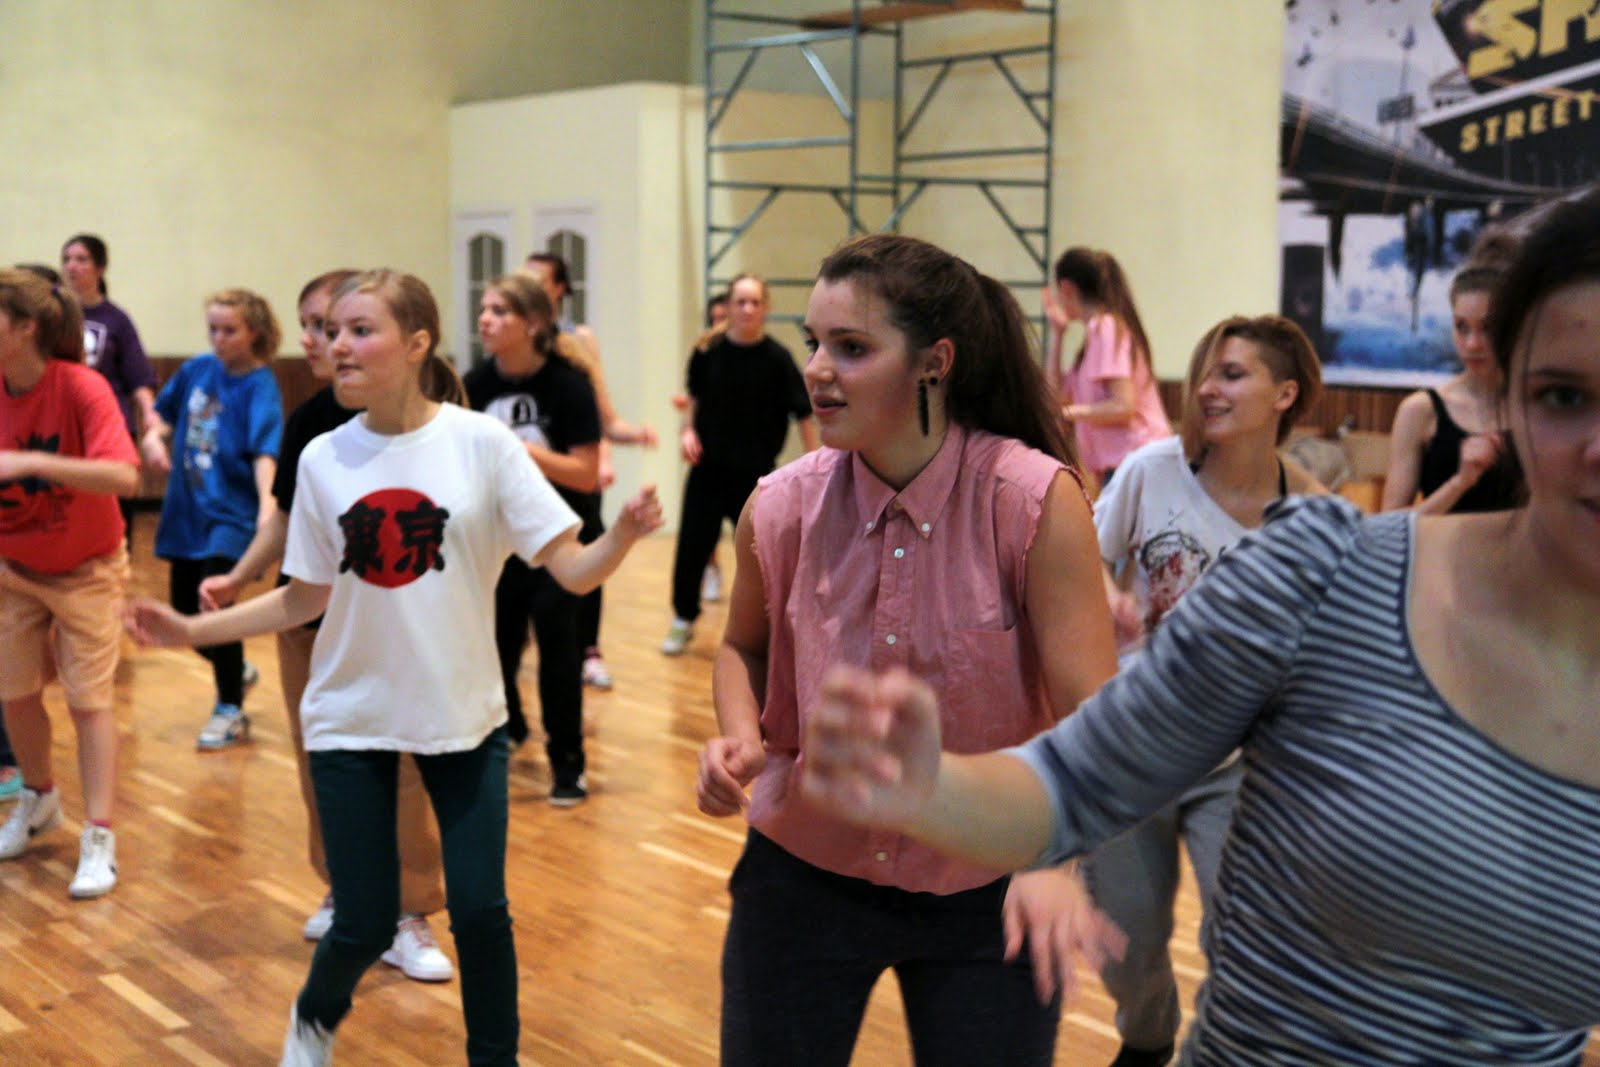 Waacking workshop with Nastya (LV) - IMG_2025.JPG